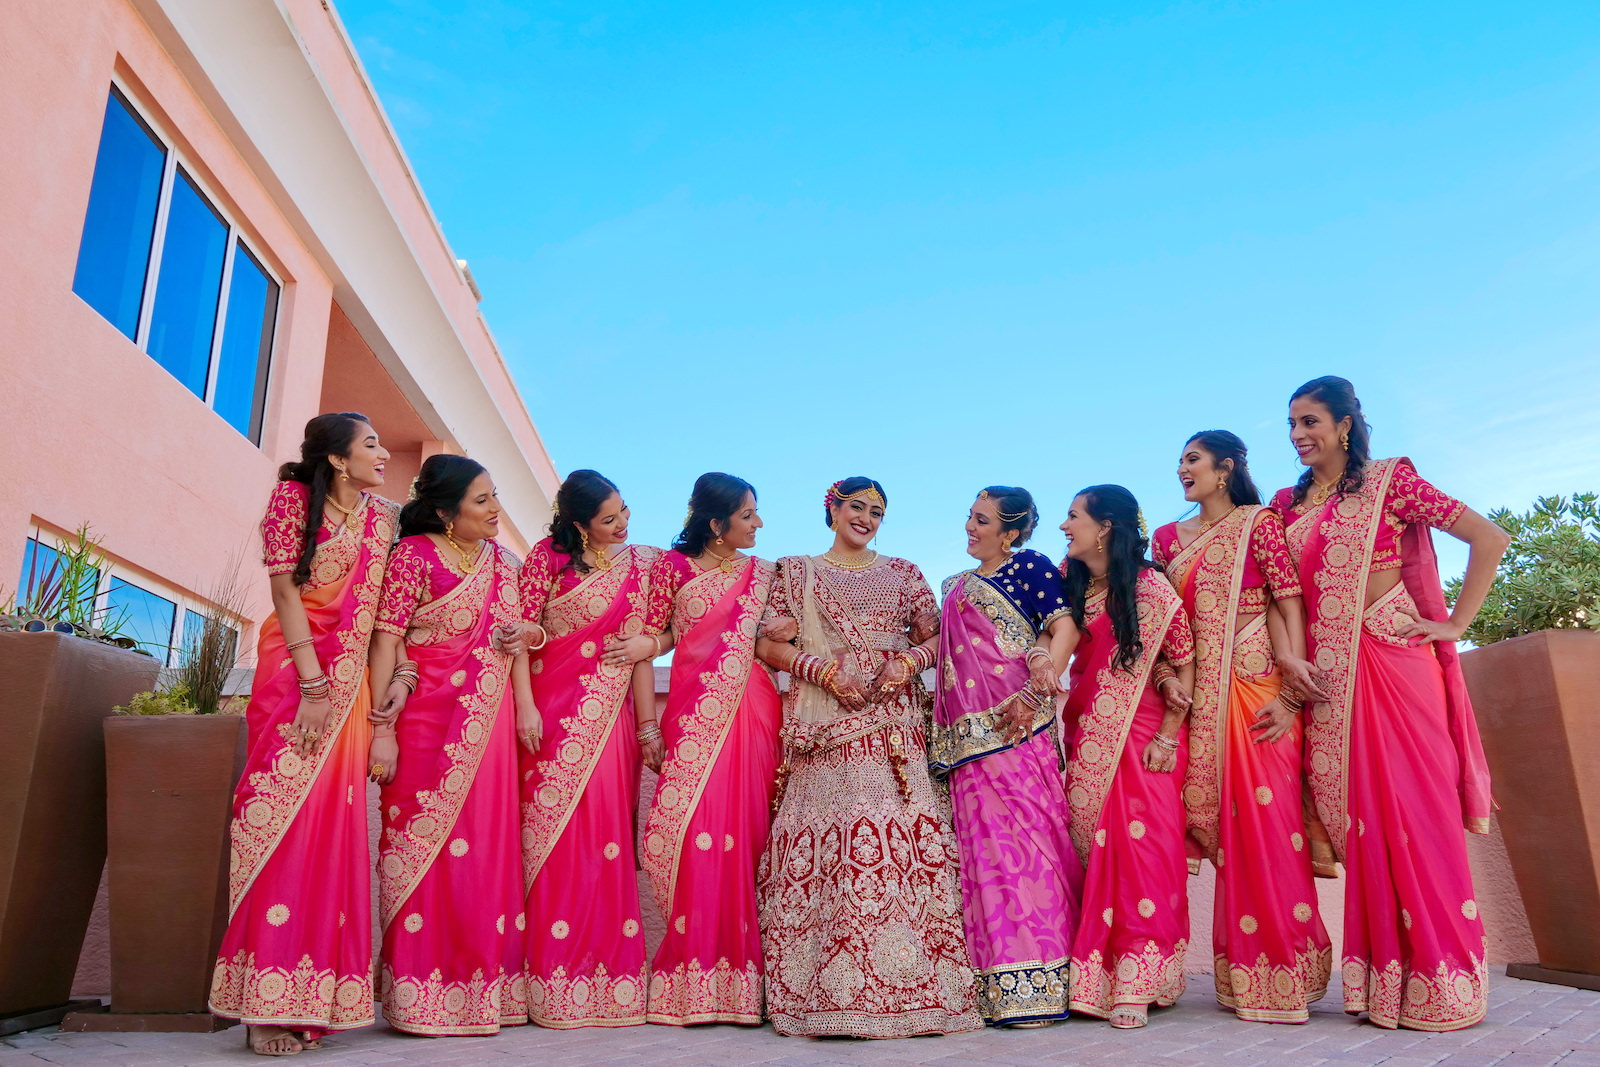 Clearwater Florida Indian Wedding | Bride and Bridesmaids in Traditional Indian Sari Garment Attire Fuchsia Pink and Gold | Tampa Wedding Hair and Makeup Artists Michele Renee The Studio